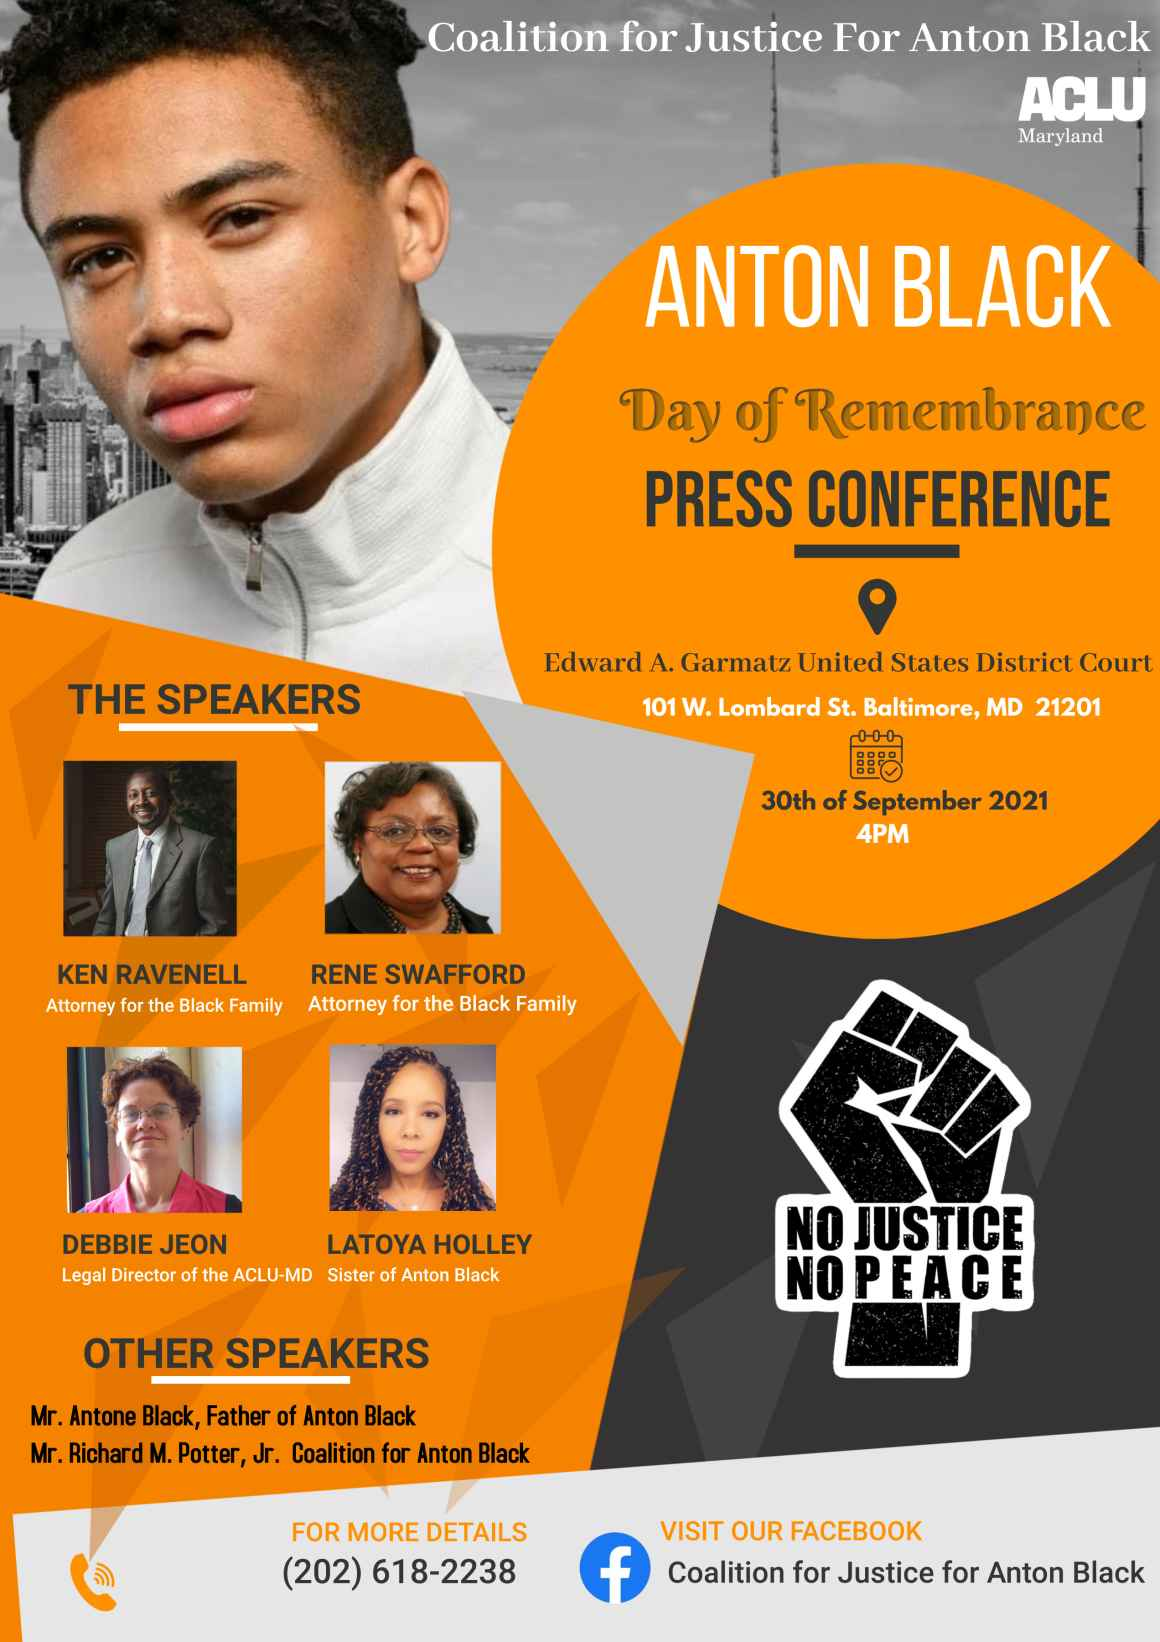 Anton Black Day of Rememberance press conference. September 30, 2021, at 4pm. Picture of Anton Black and the speakers, Ken Ravenell, Rene' Swafford, Debbie Jeon, and Latoya Holley. Other speakers include Antone Black and Richard Potter.